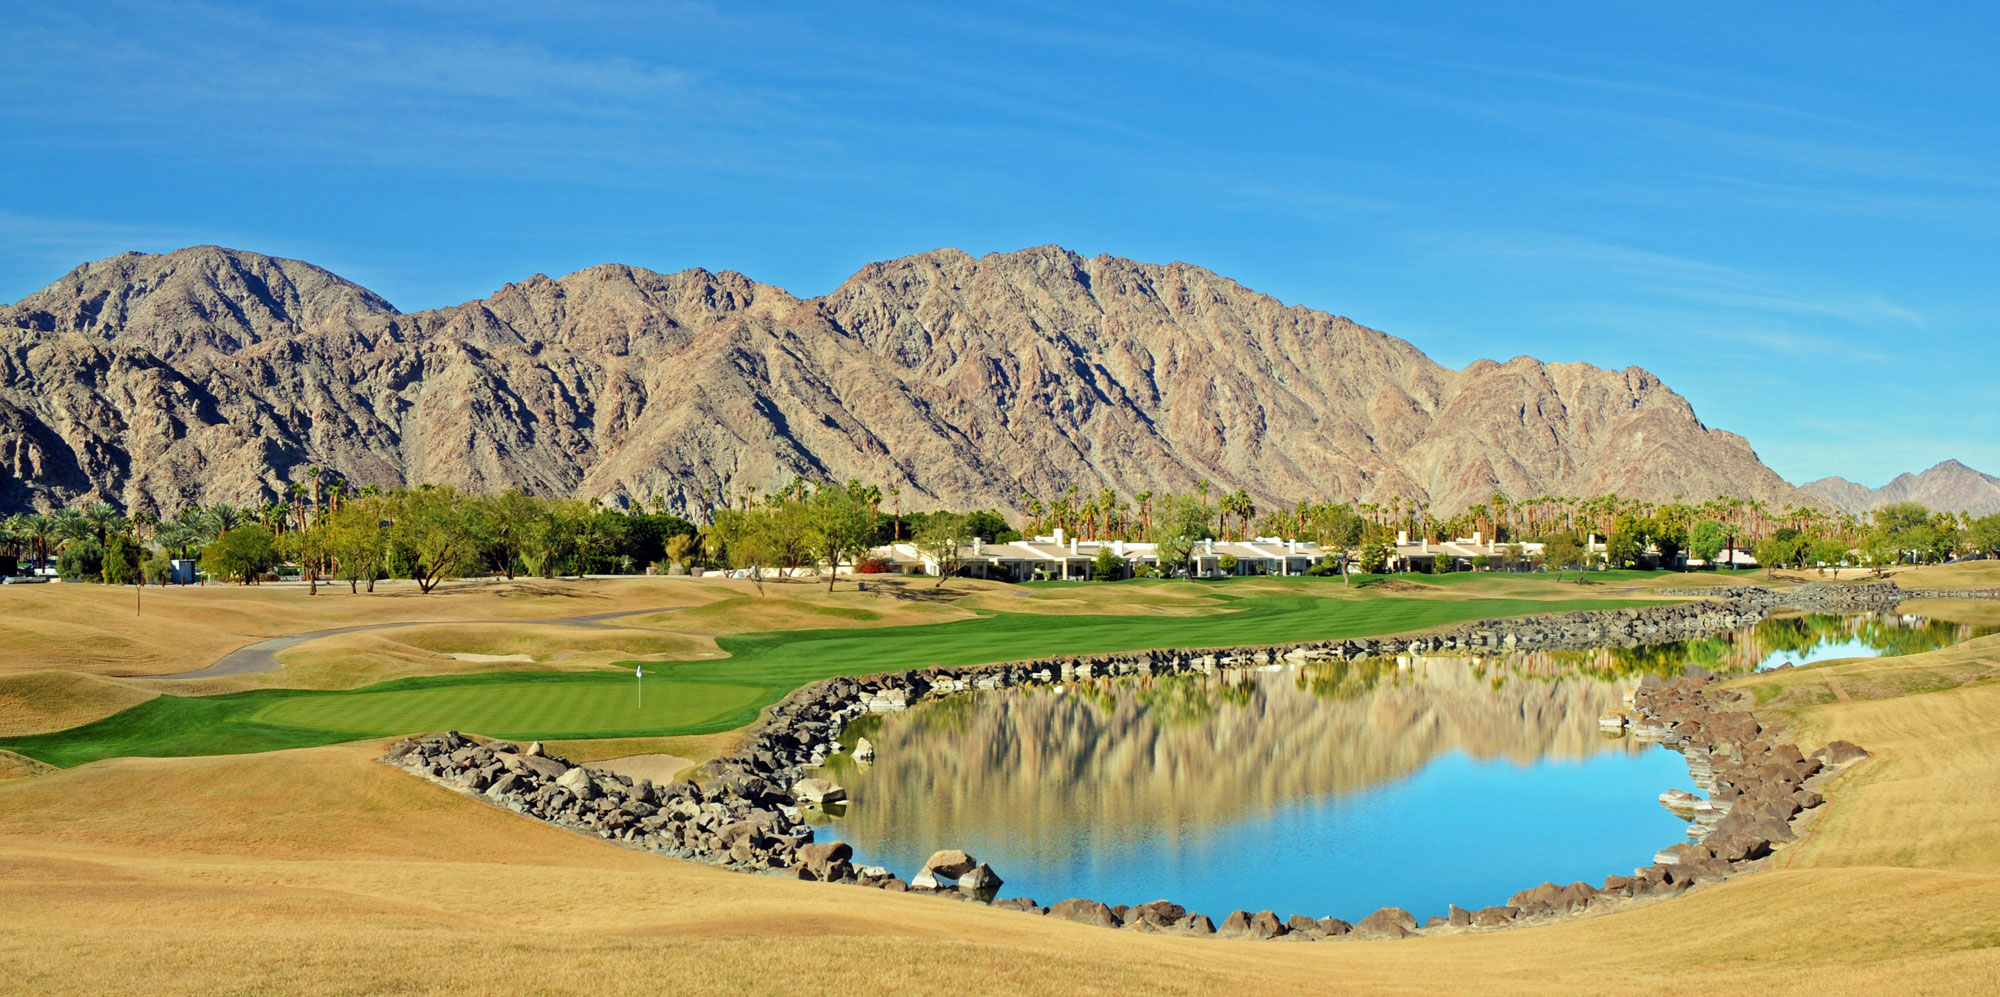 PGA-West-Stadium18-Robert-Kaufman.jpg